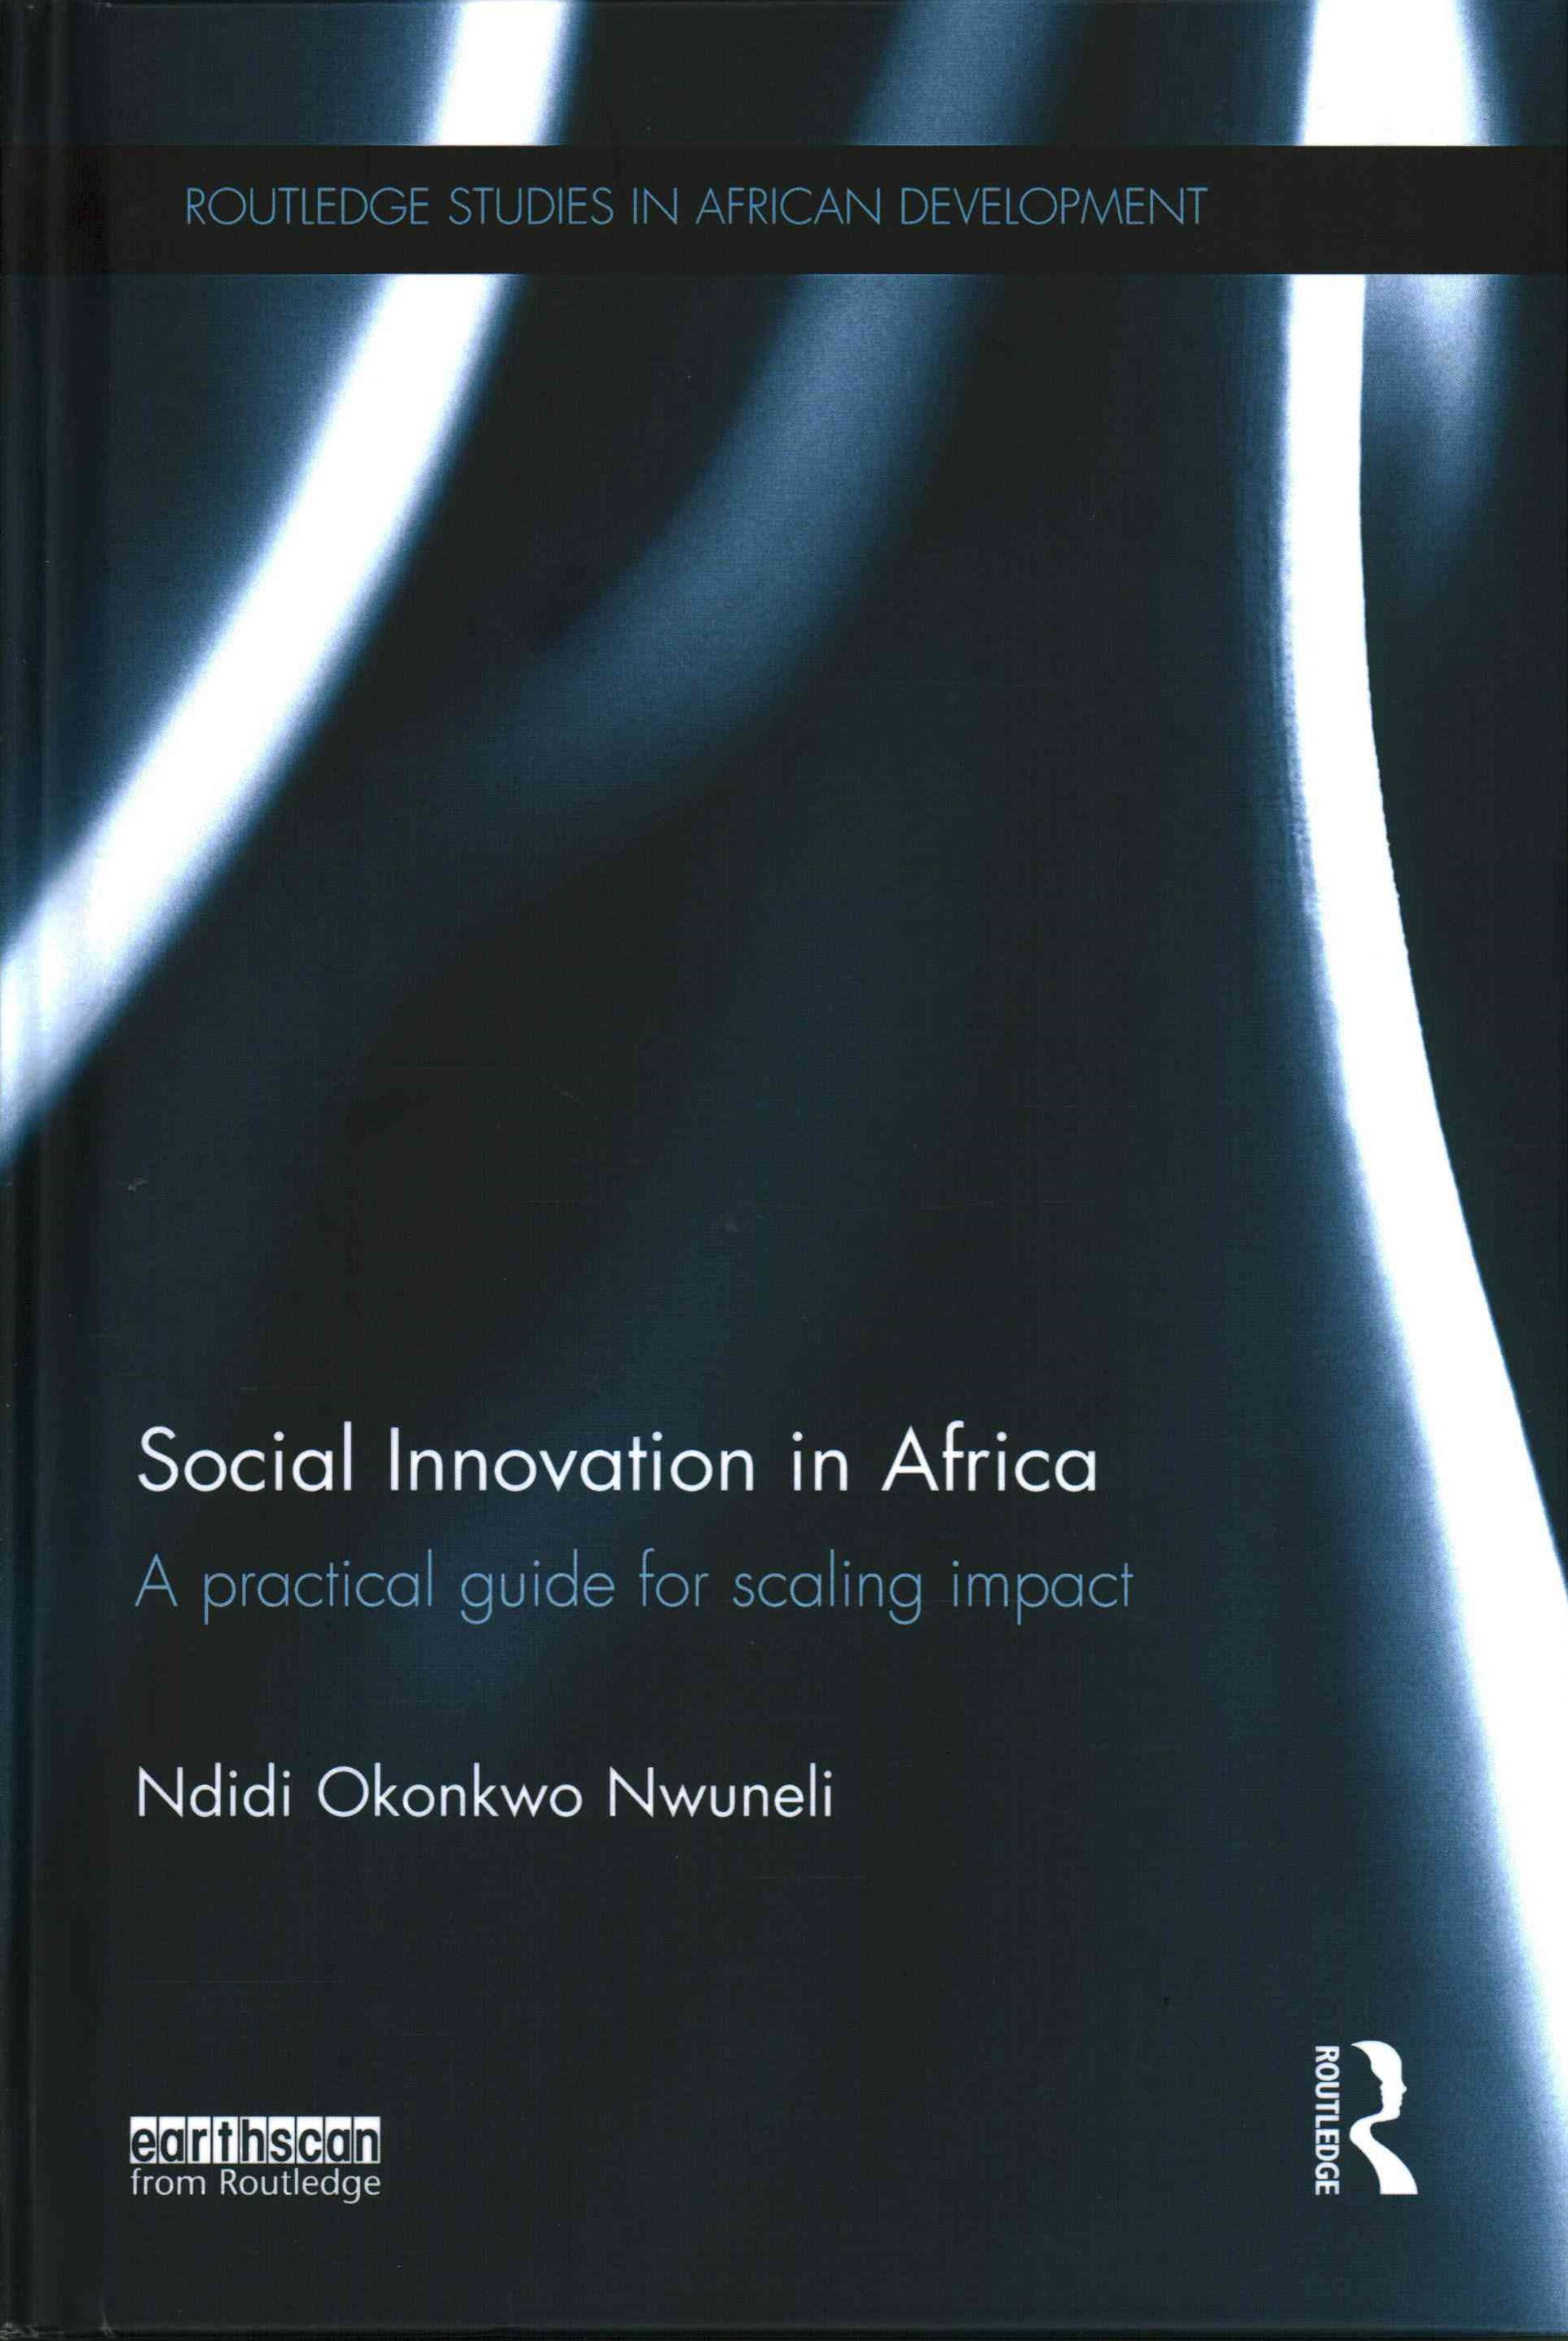 Social Innovation in Africa